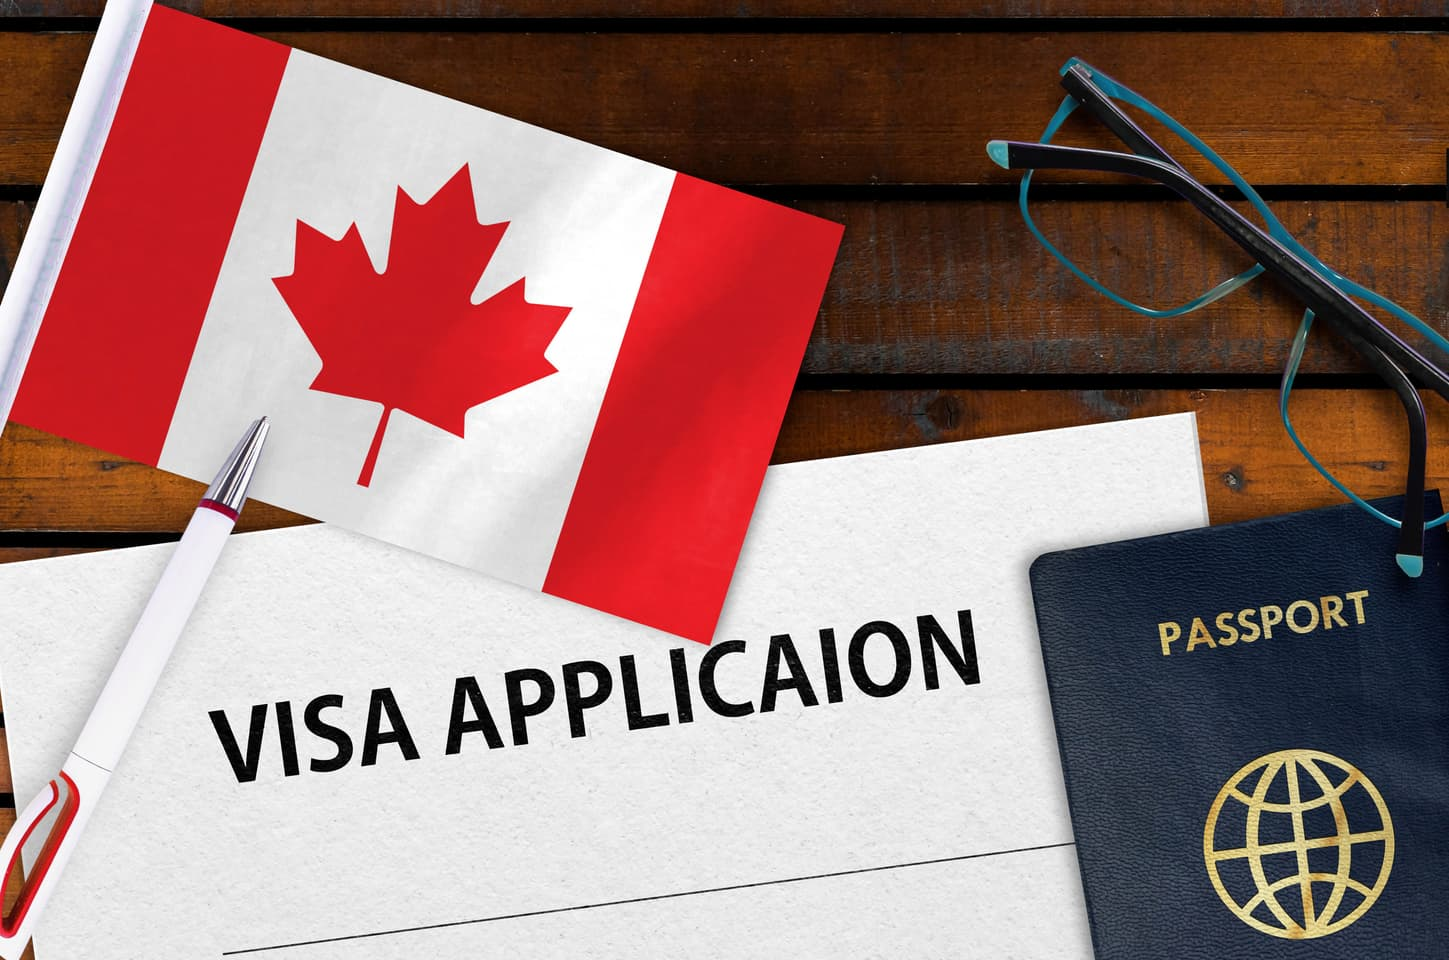 Canadian visa application with flag and passport